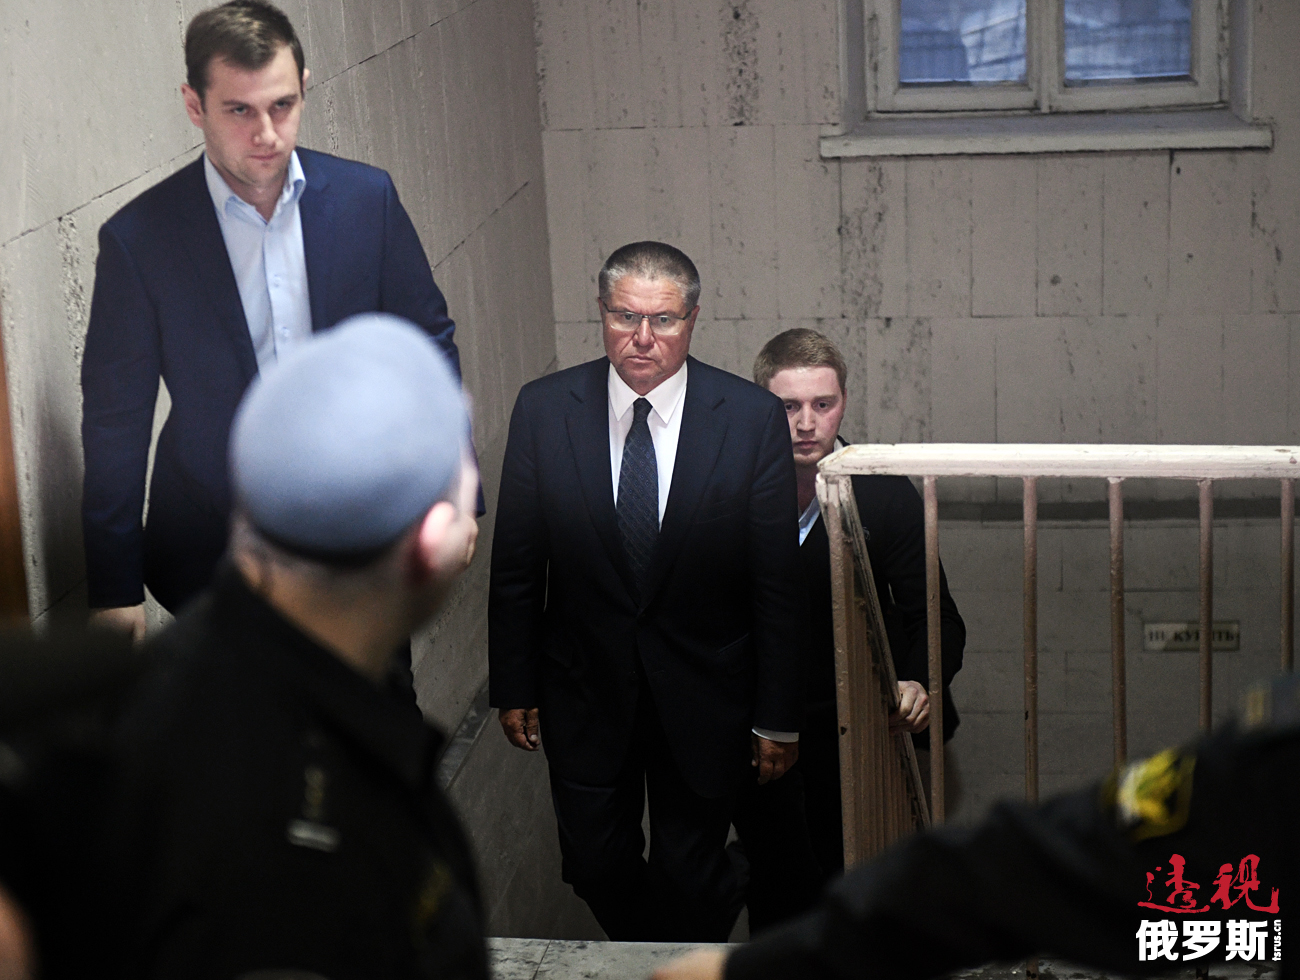 Ulyukayev's lawyers ask the court to overturn the district court order and to choose a milder measure, not restricting his freedom of movement.